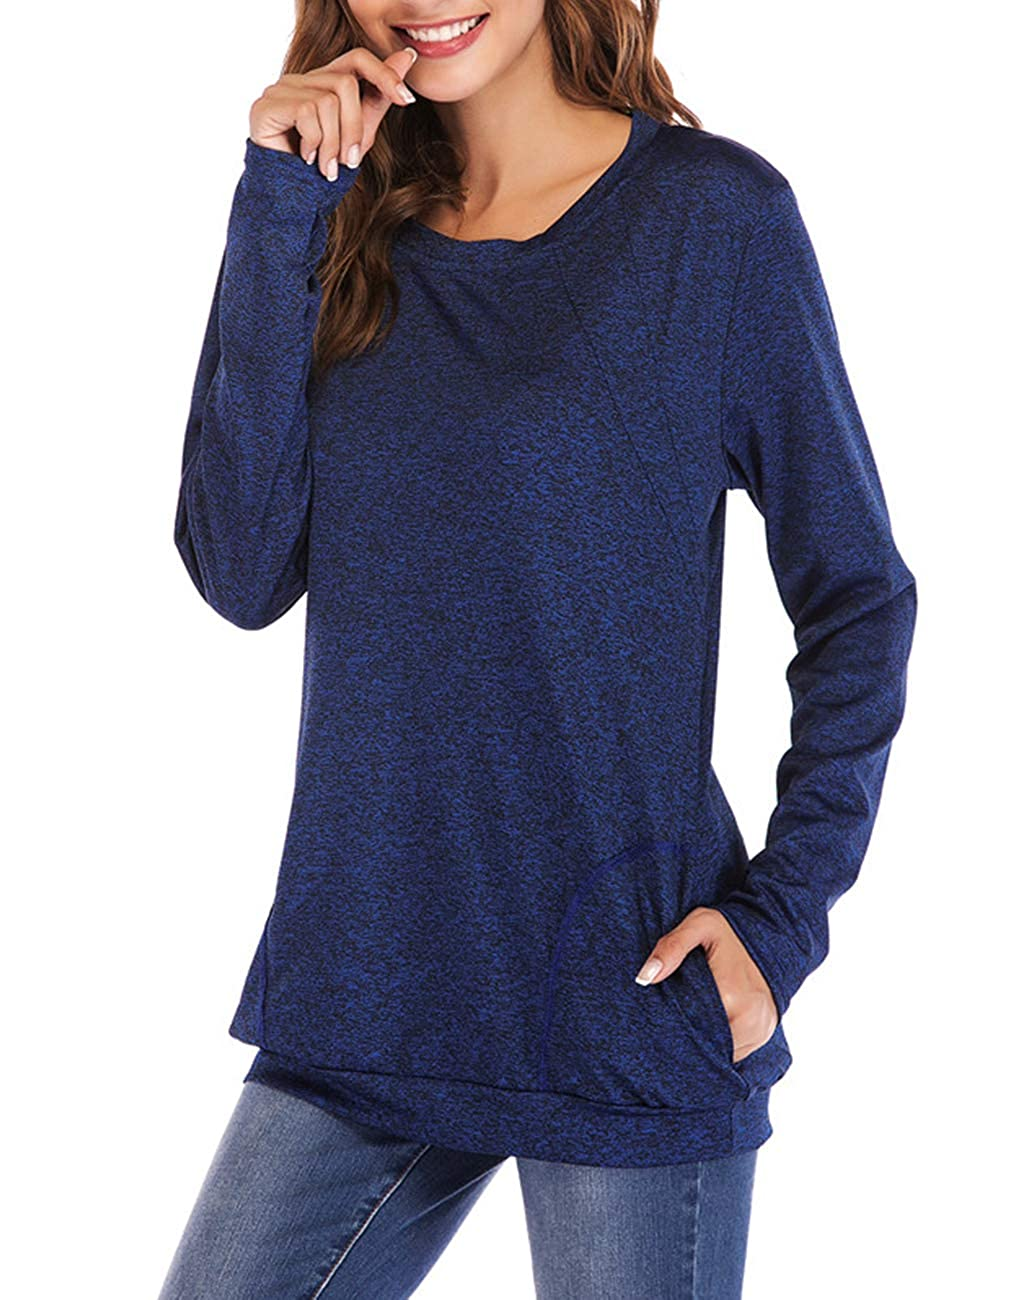 Defal Womens Long Sleeve Round Neck Quick-Dry Top T-Shirts Loose Gym Sports with Thumb Holes Pockets Comfortable Tunic Blouse